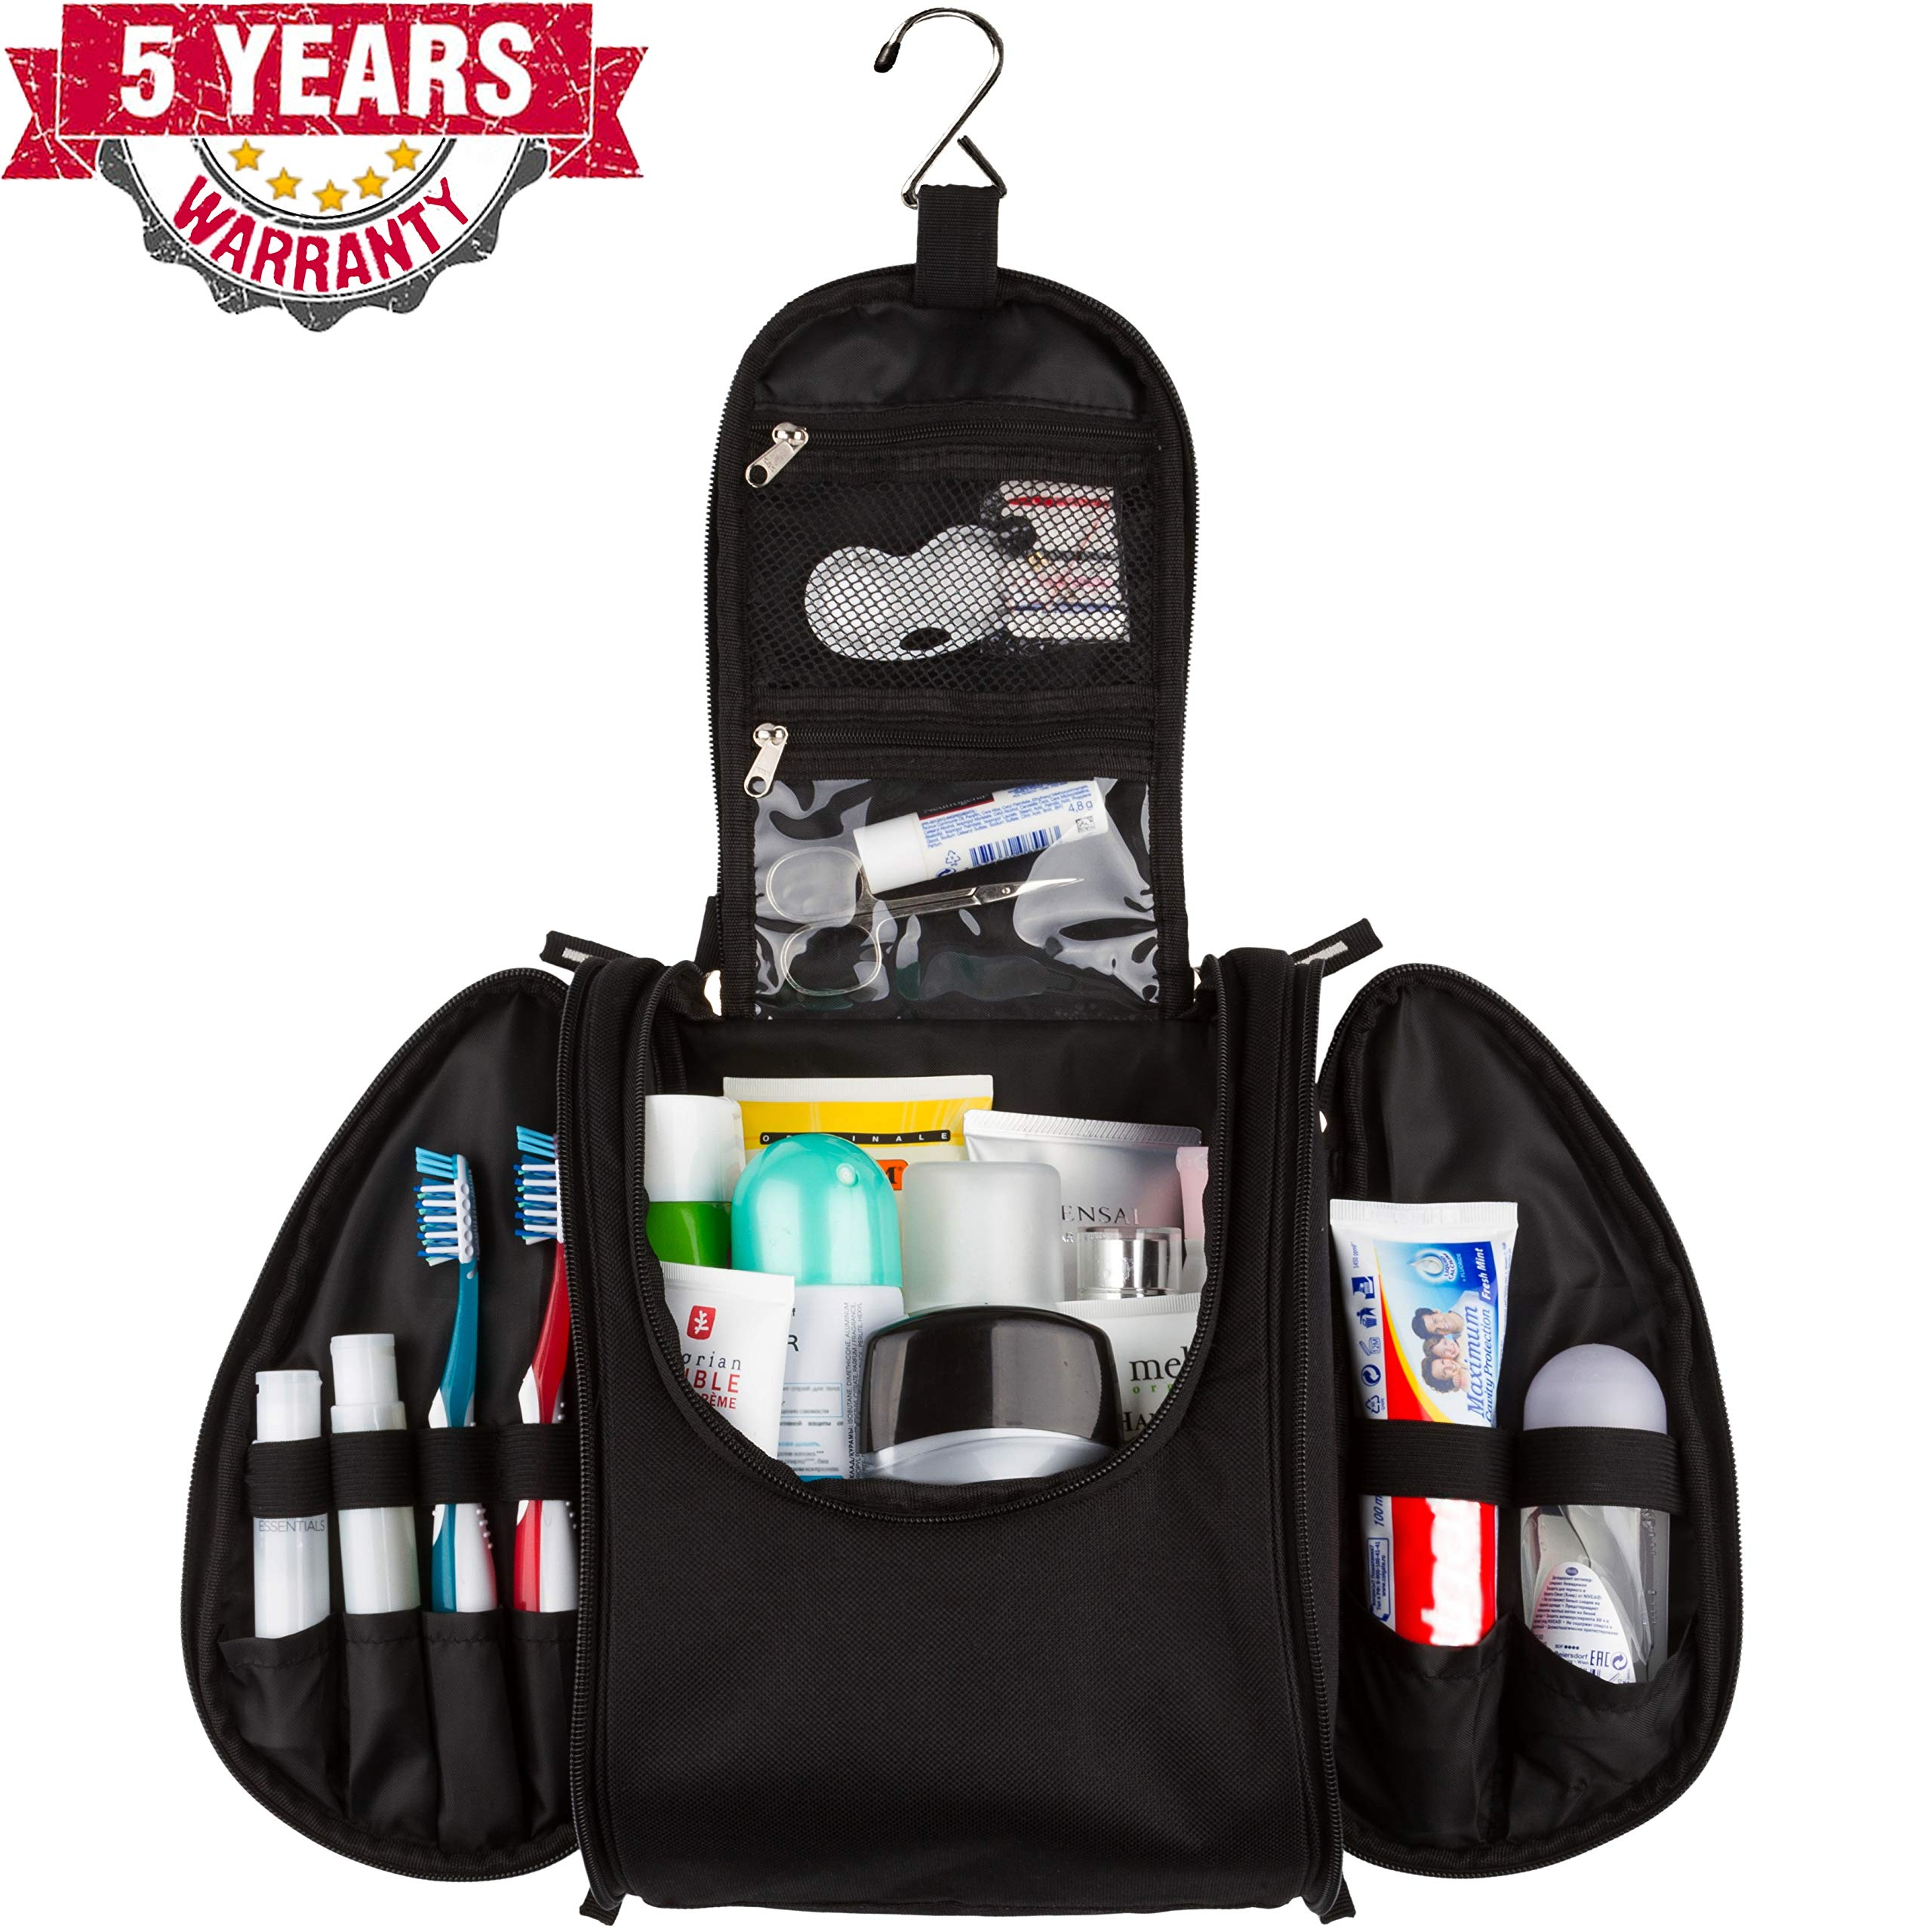 42 Travel Hanging Toiletry Bag - Large Kit Organizer for Men & Women - Spacious & Compact, 17 Compartments for all you need - Strong Zippers, Sturdy Hook, Water Resistant by 42Travel